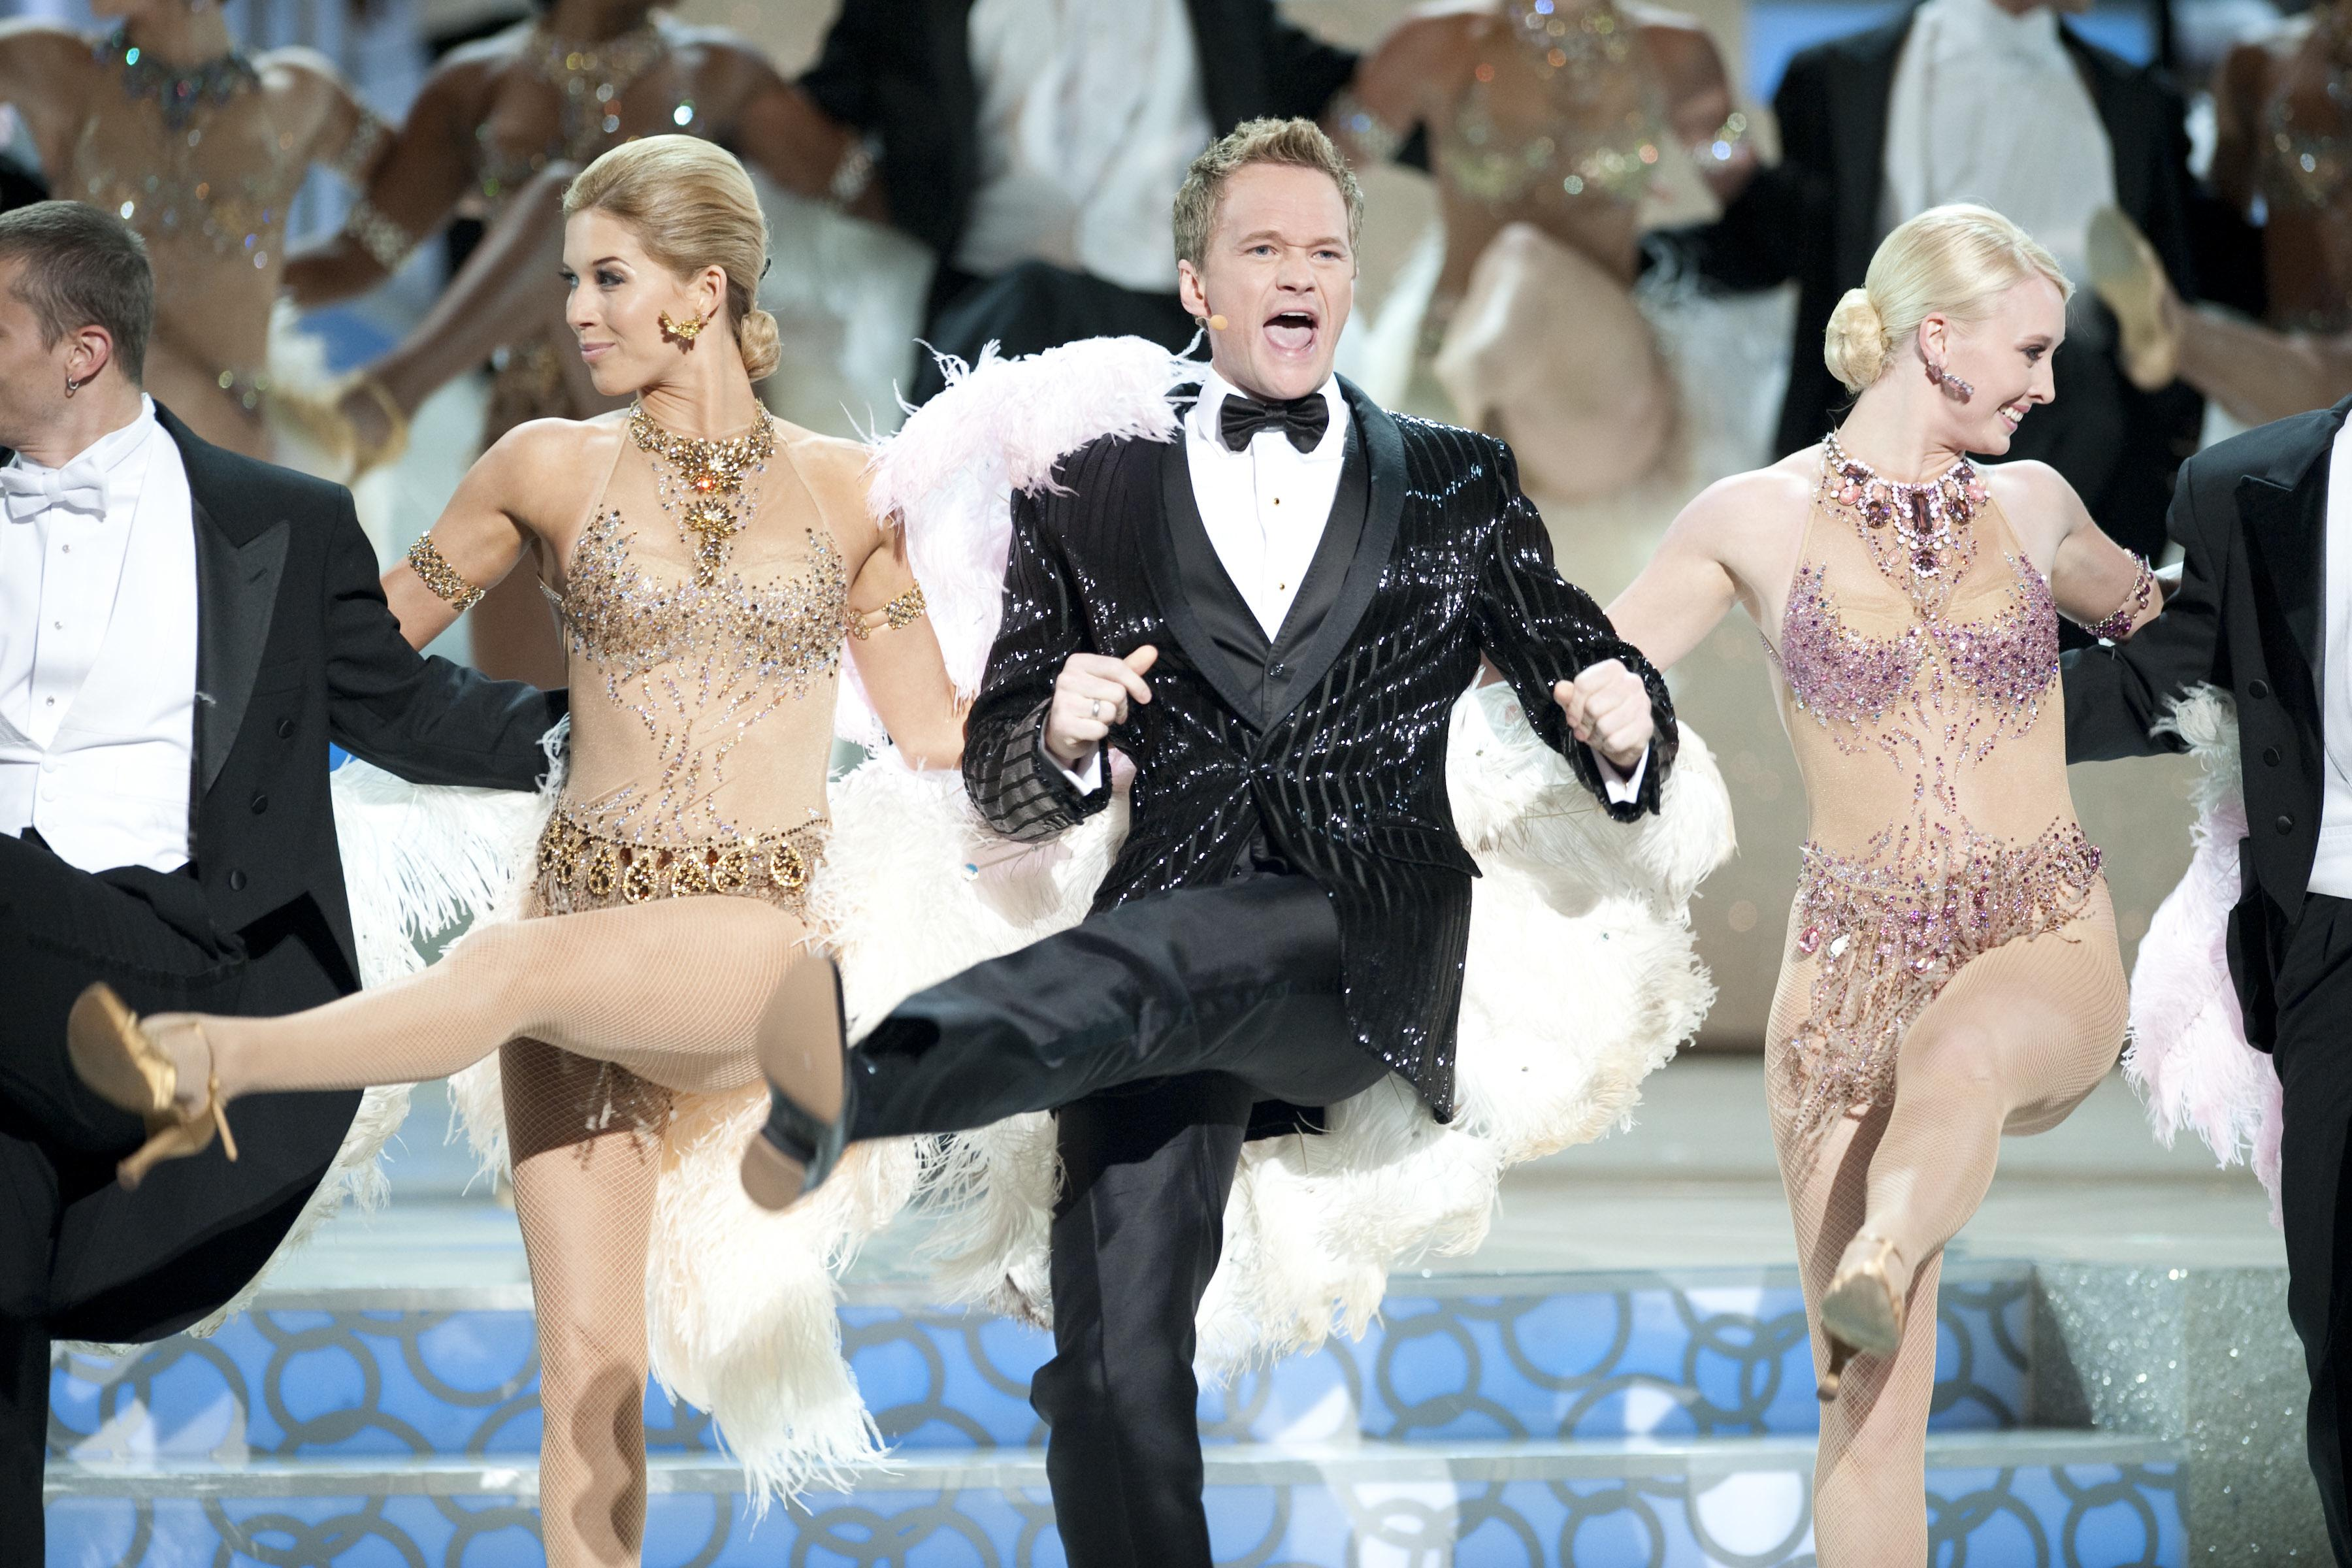 Neil Patrick Harris performs the opening number.